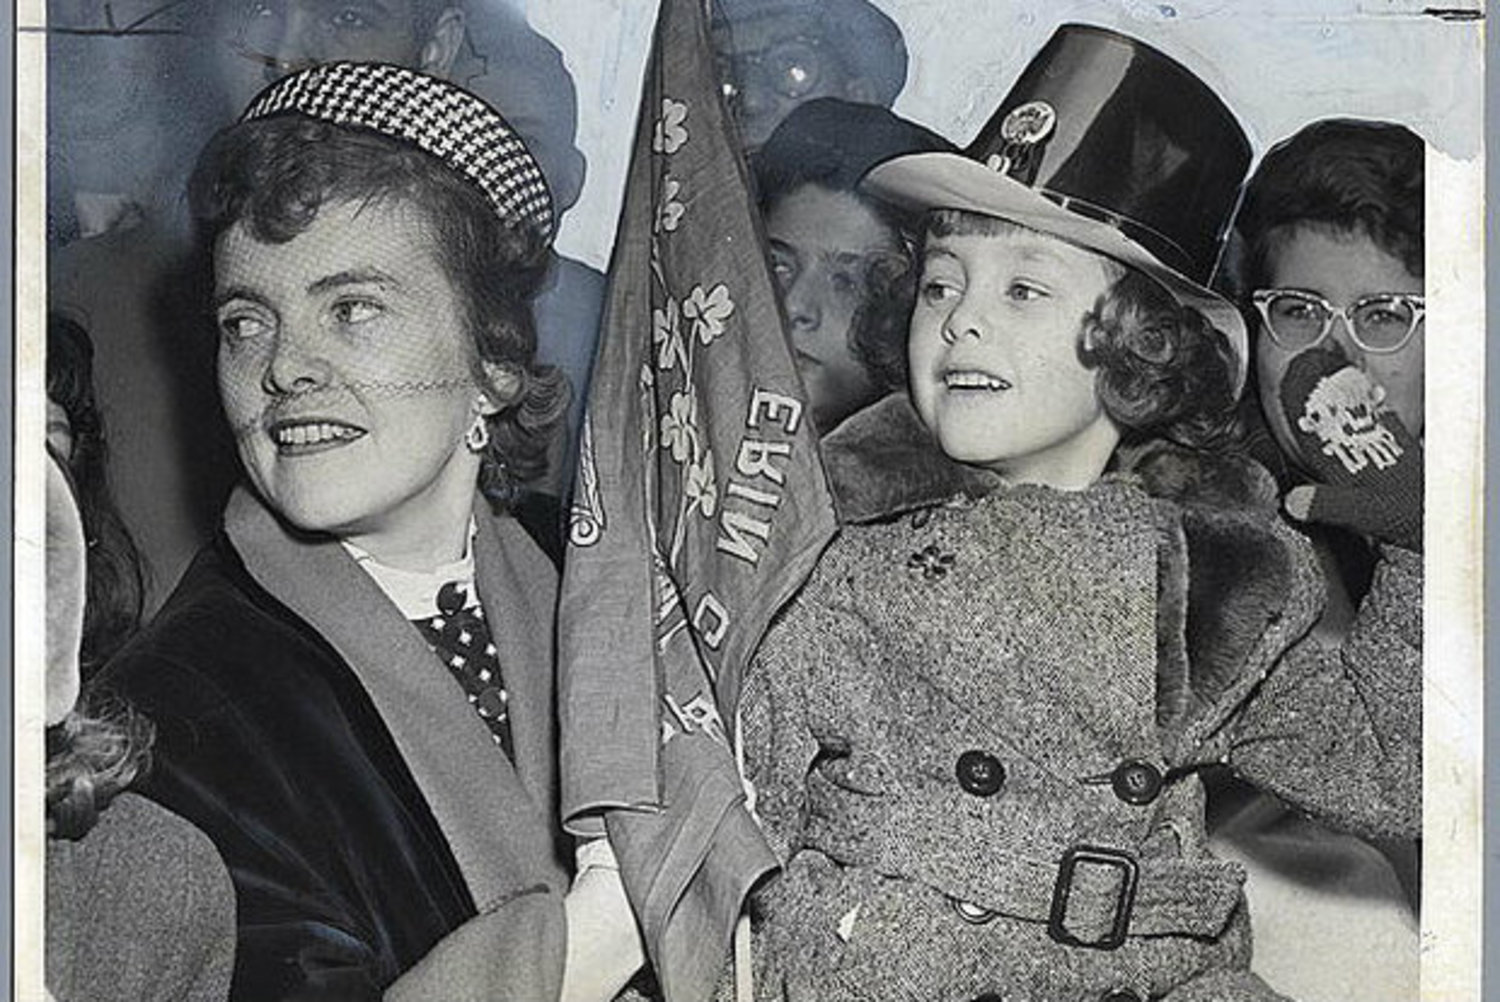 A mother and daughter pair cheer on St. Patrick's Day revelers near 49th Street in 1953.